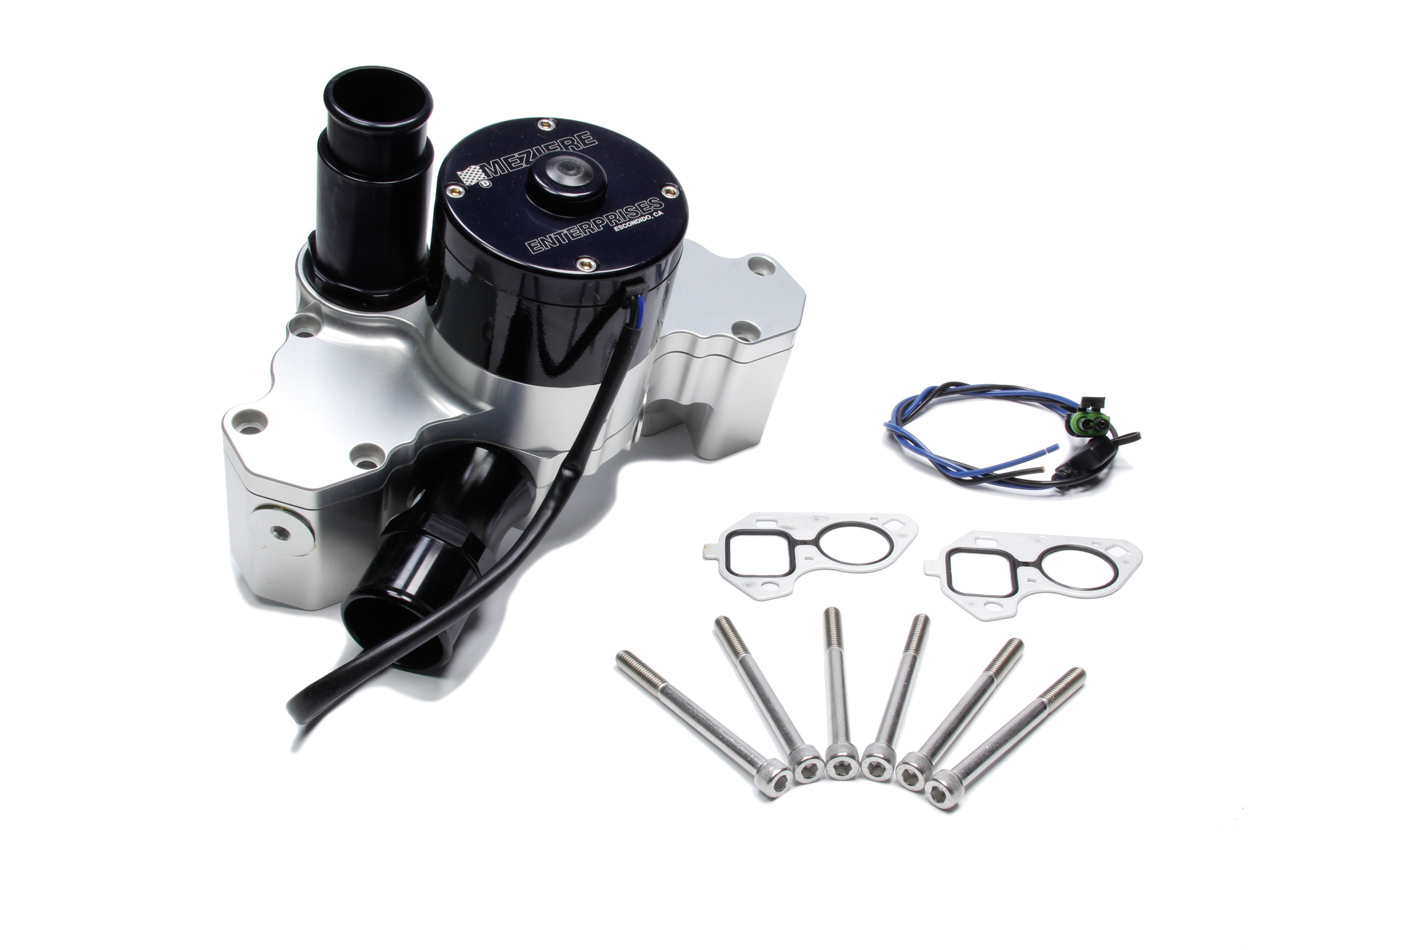 Meziere WP333N Water Pump, Electric, 1-3/4 in Hose Barb Inlet, Gaskets / Hardware / Wiring, Aluminum, Natural, GM LS-Series, Kit